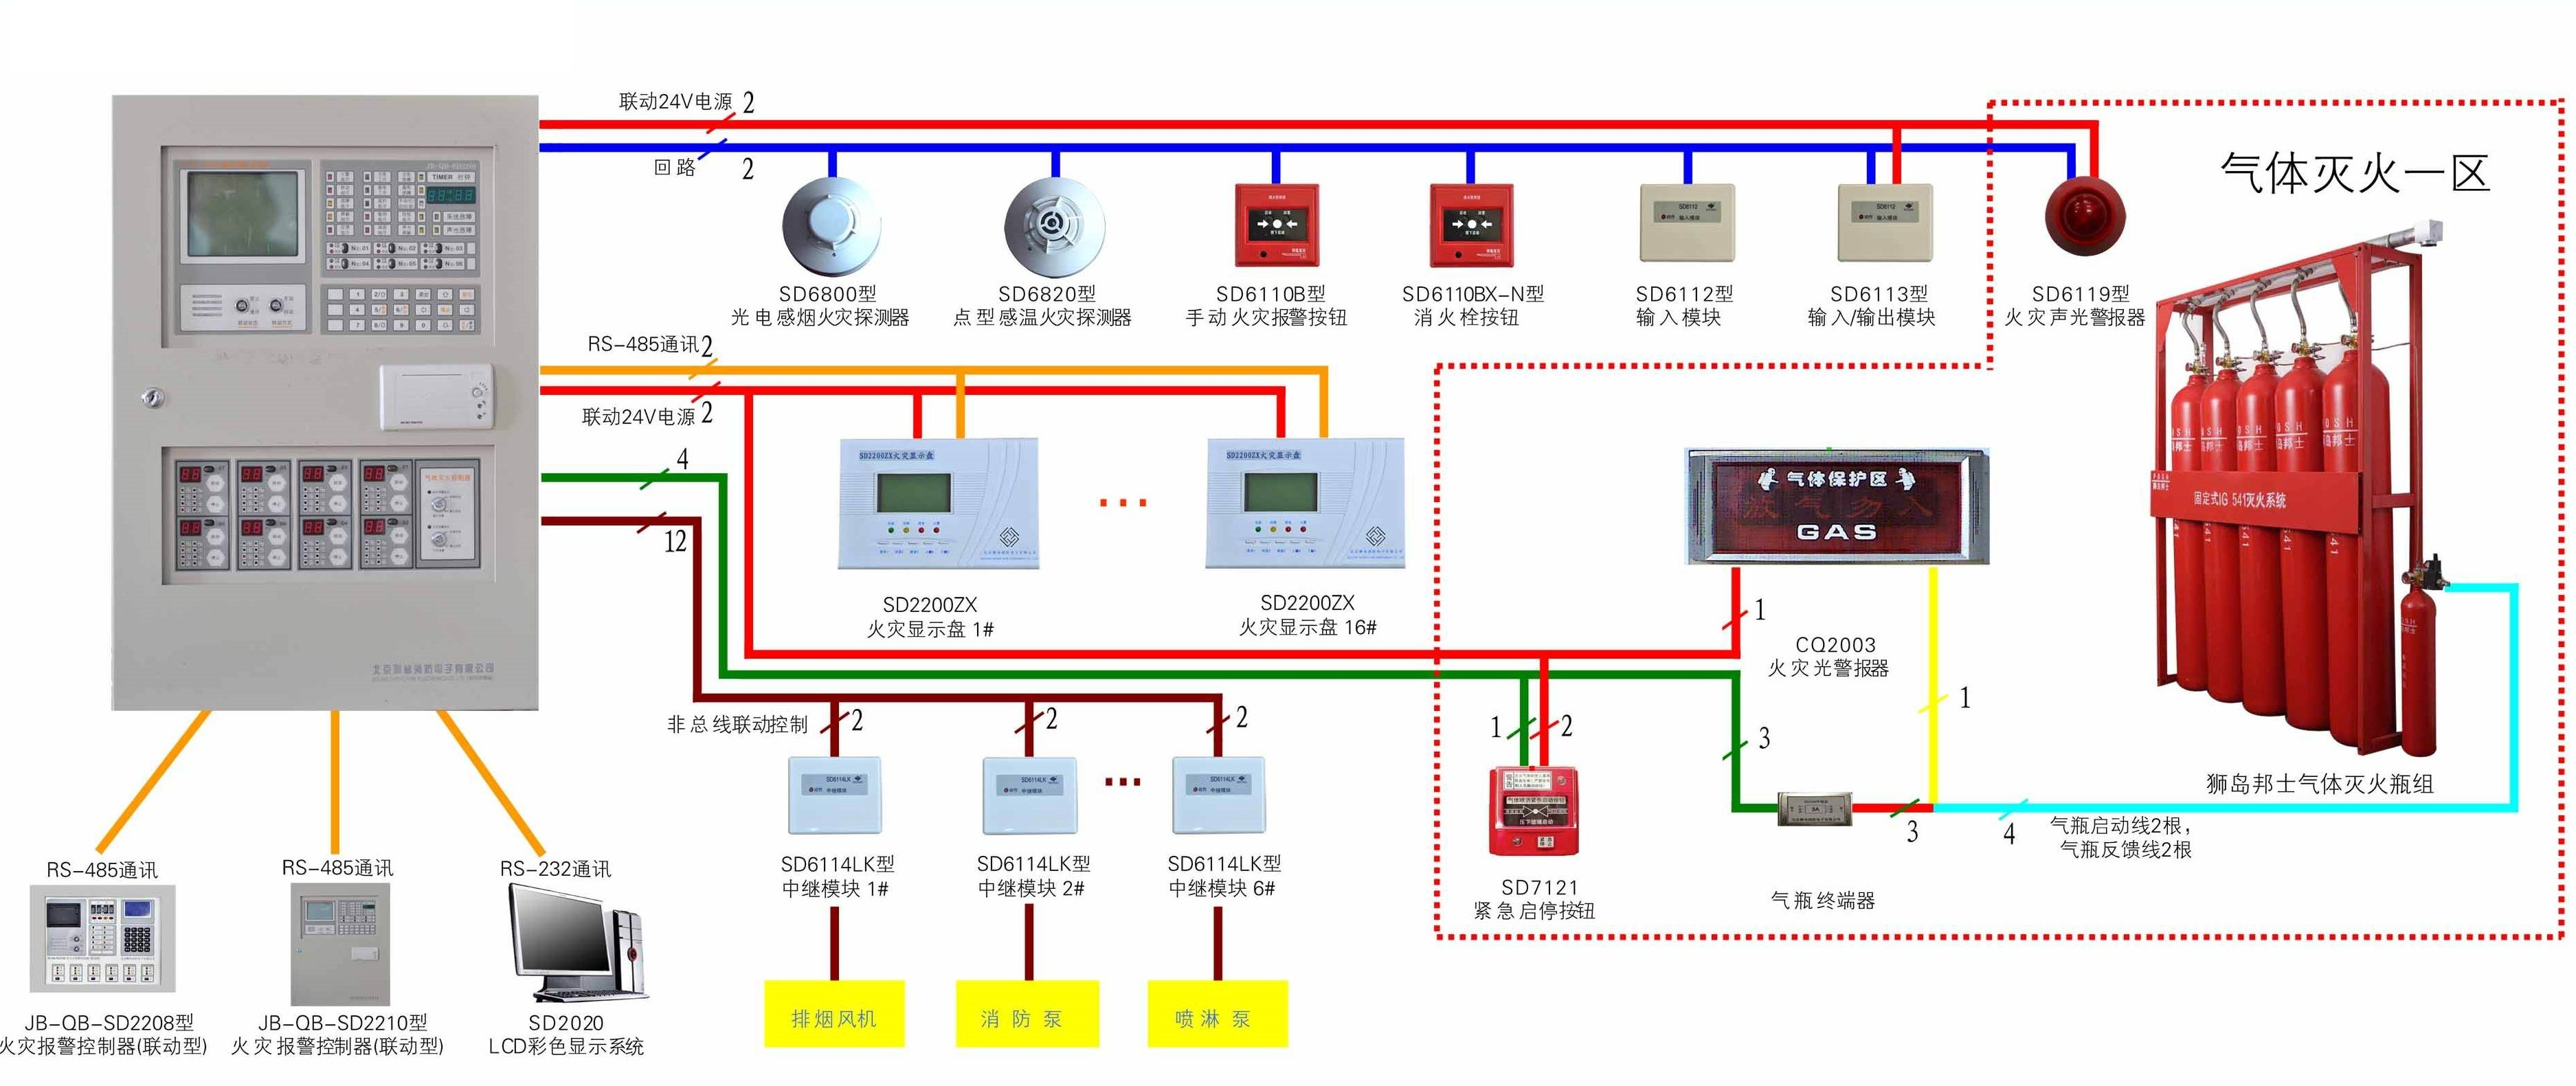 small resolution of ow to start a fire security project from laying the pipeline to program fire detectors and debugging fire security circuit we guide you how to install the